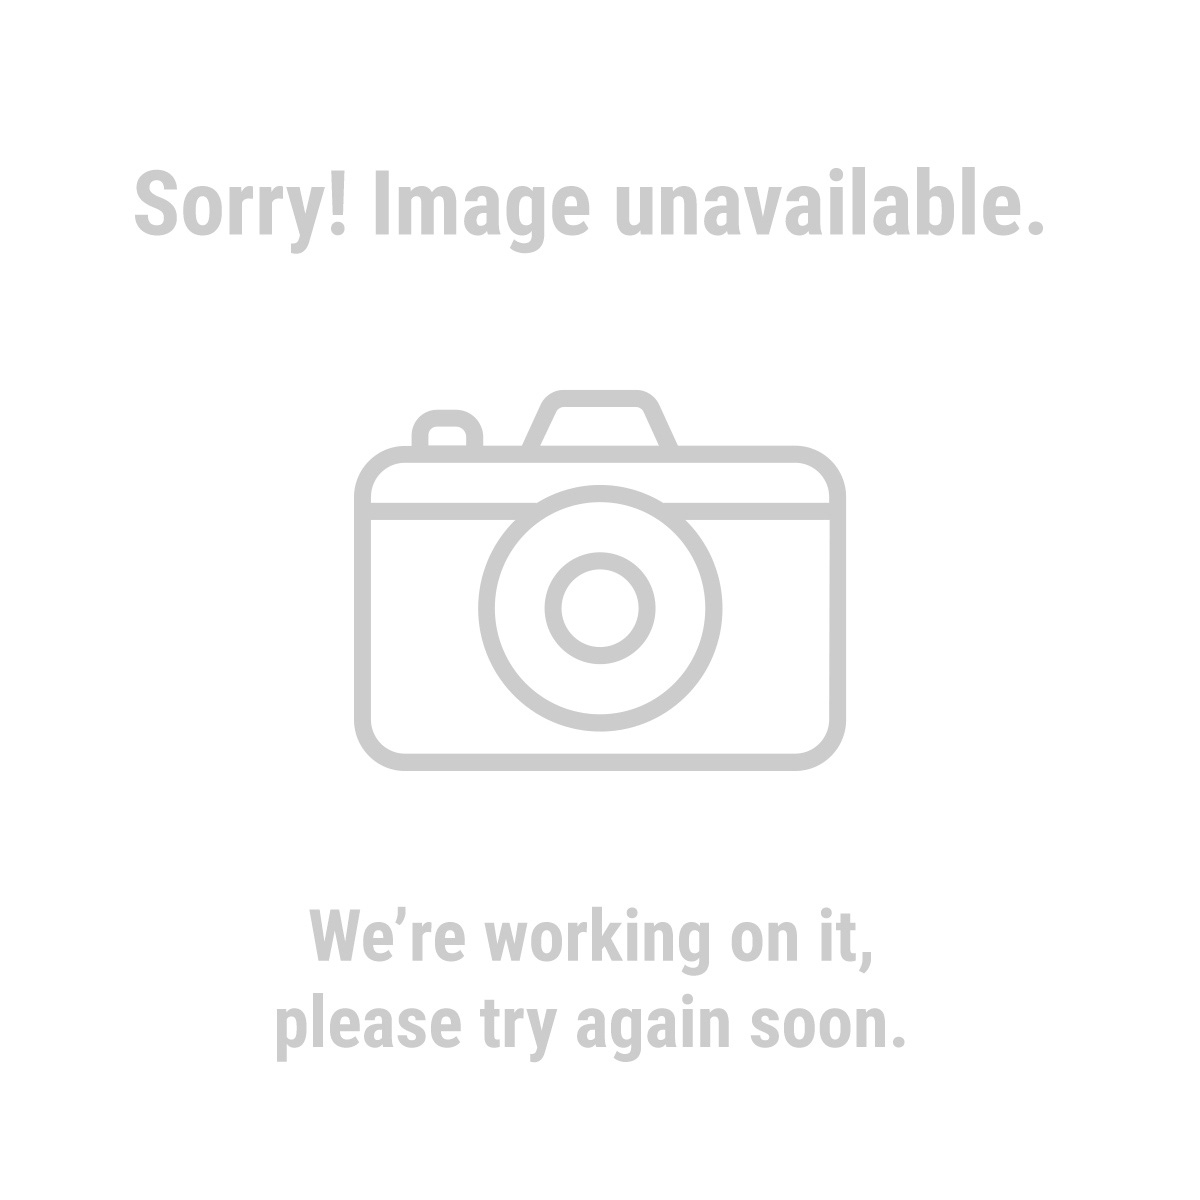 Badland Winches 96127 1500 lb. Capacity 120 Volt AC Electric Winch